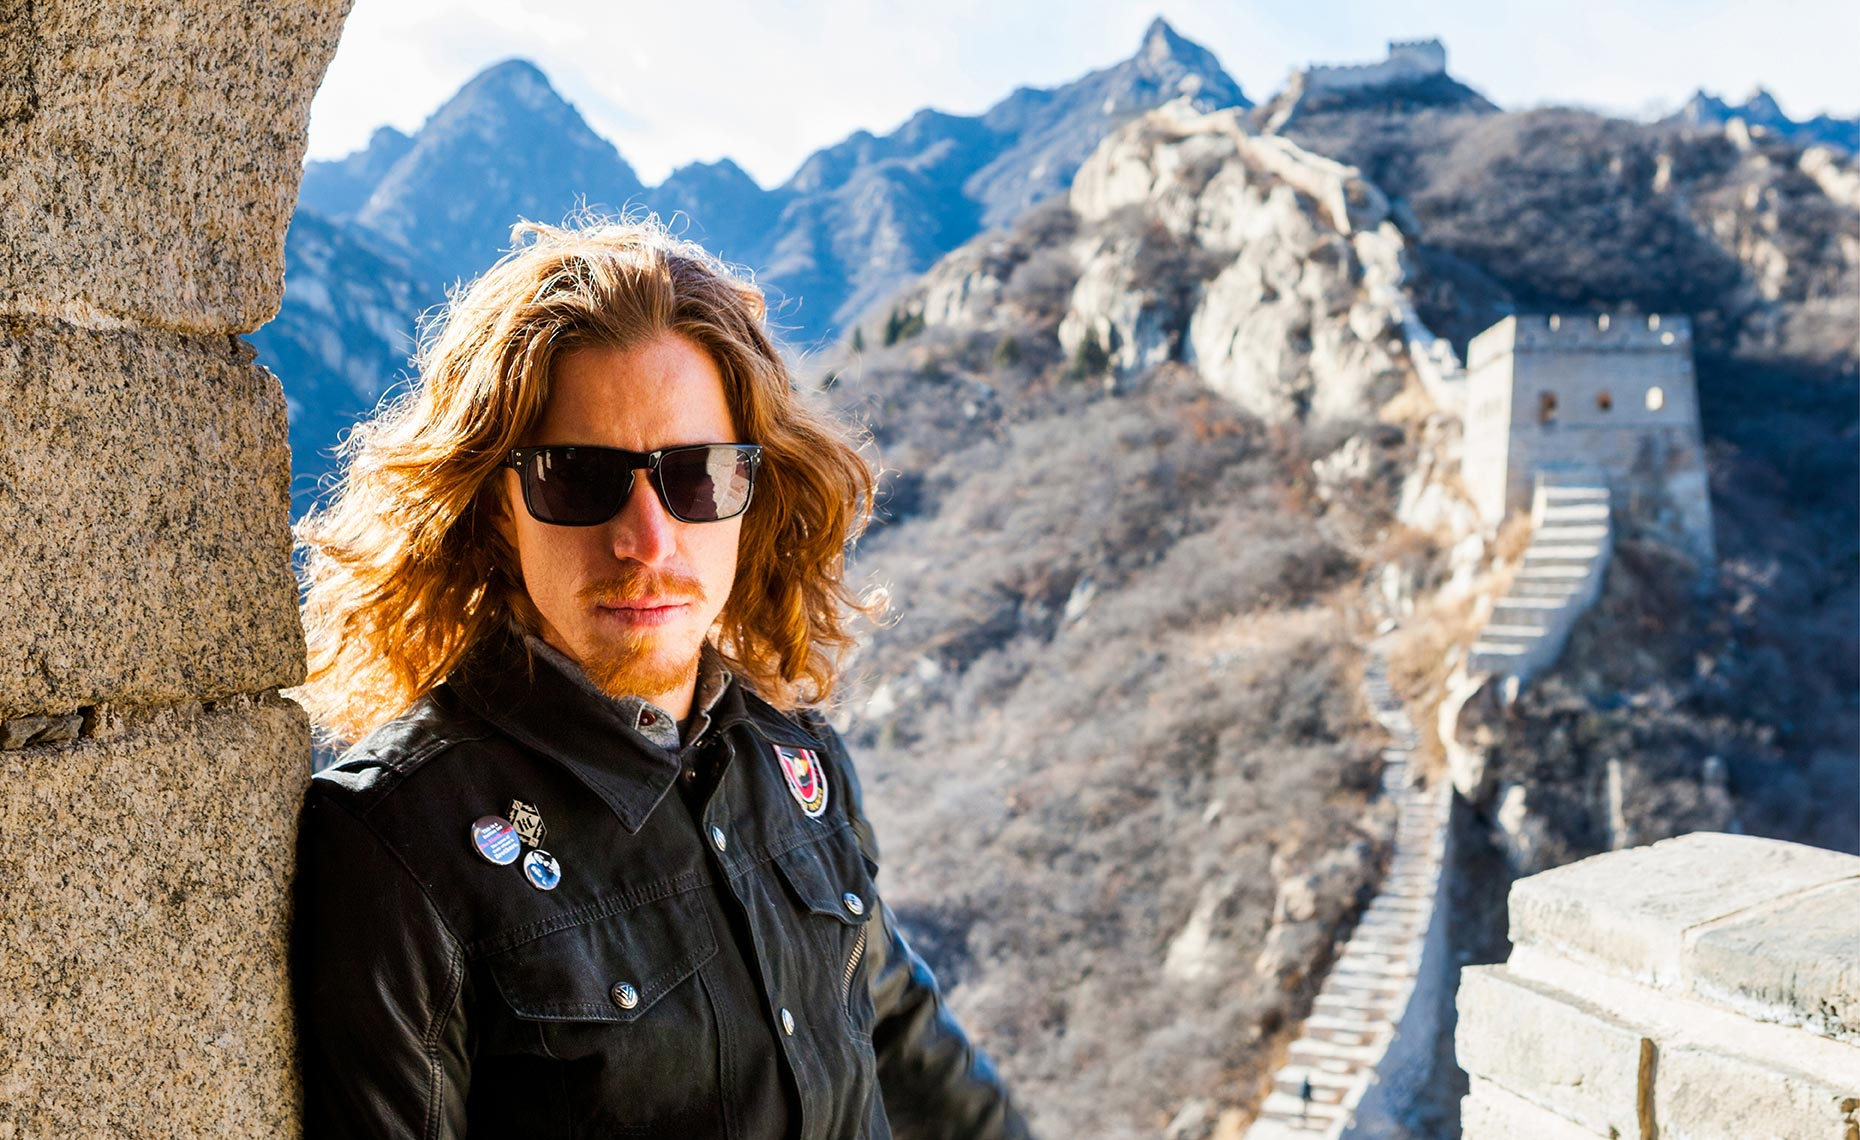 03_Shaun_White_The_Great_Wall_China_Portrait_Lifestyle_Chris_Wellhausen_Photography.JPG